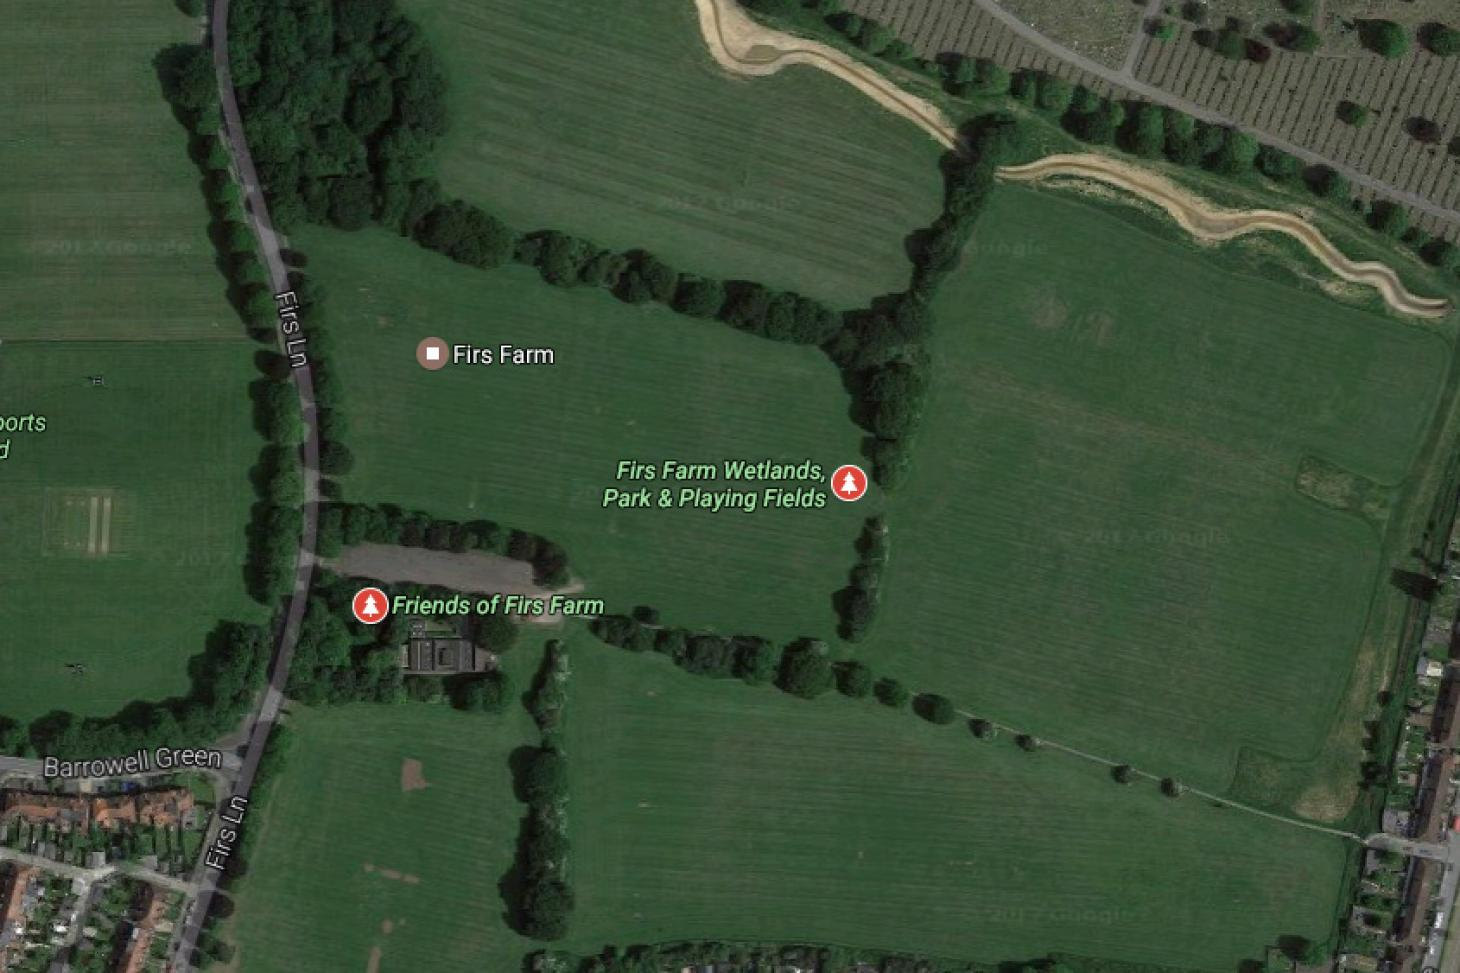 Firs Farm Union   Grass rugby pitch